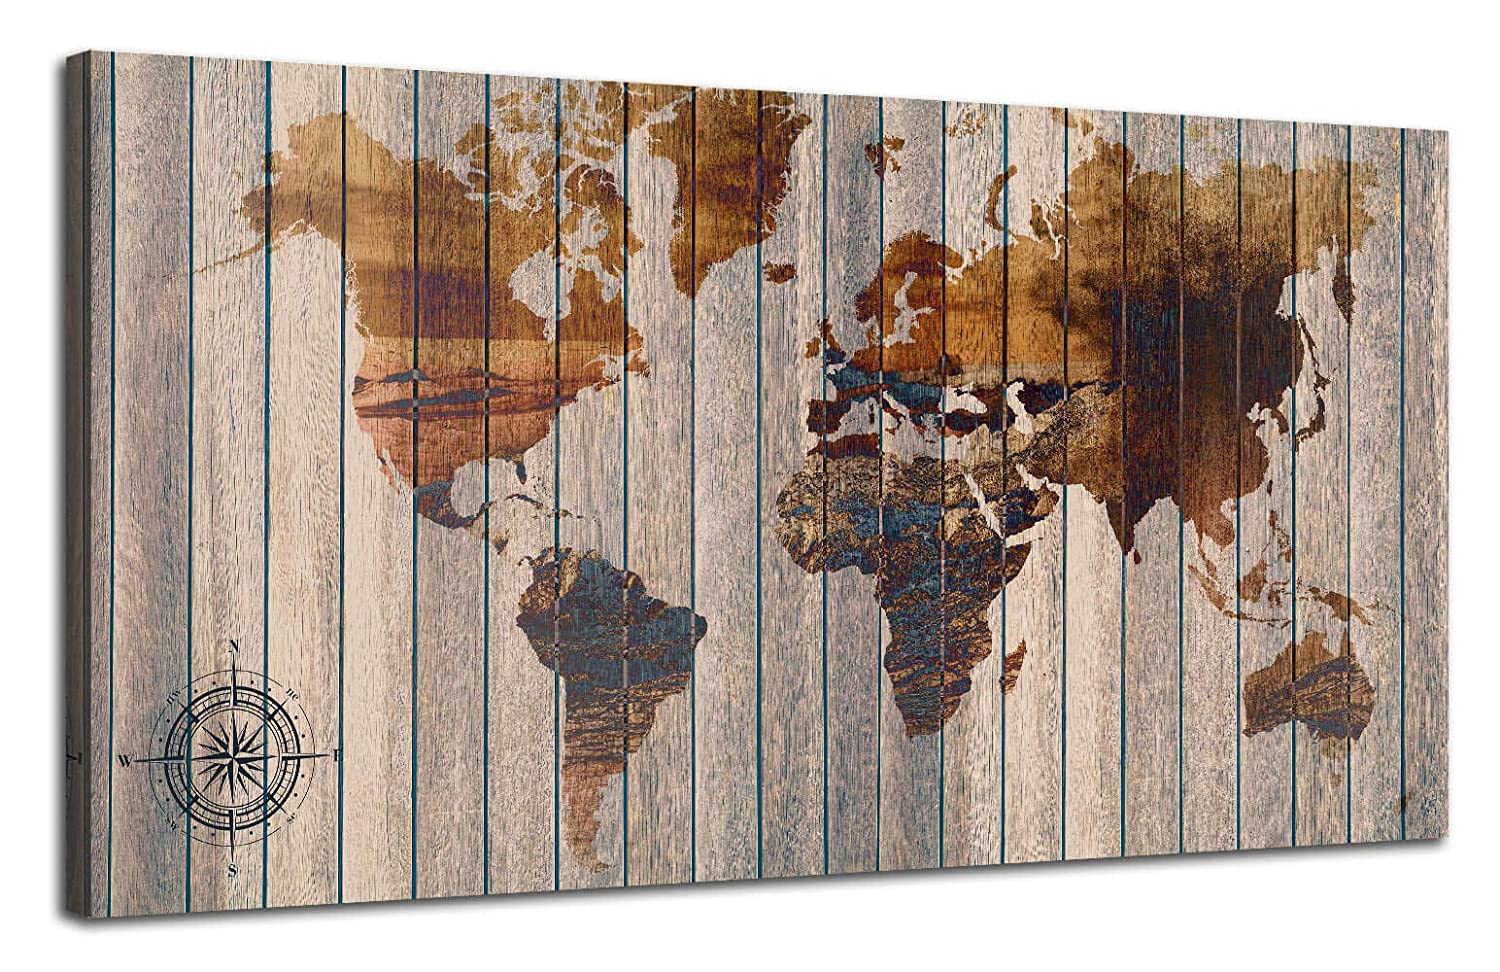 Amazon.com: Canvas Wall Art World Map Vintage Beige Painting Poster on italy vintage poster, travel vintage poster, blue vintage poster, popular vintage poster, cambodia vintage poster, water vintage poster, switzerland vintage poster, architecture vintage poster, austria vintage poster, usa vintage poster, wallpapers vintage poster, japan vintage poster, solar system vintage poster, egypt vintage poster, london vintage poster, hong kong vintage poster, atlas vintage poster, indonesia vintage poster, india vintage poster, spain vintage poster,